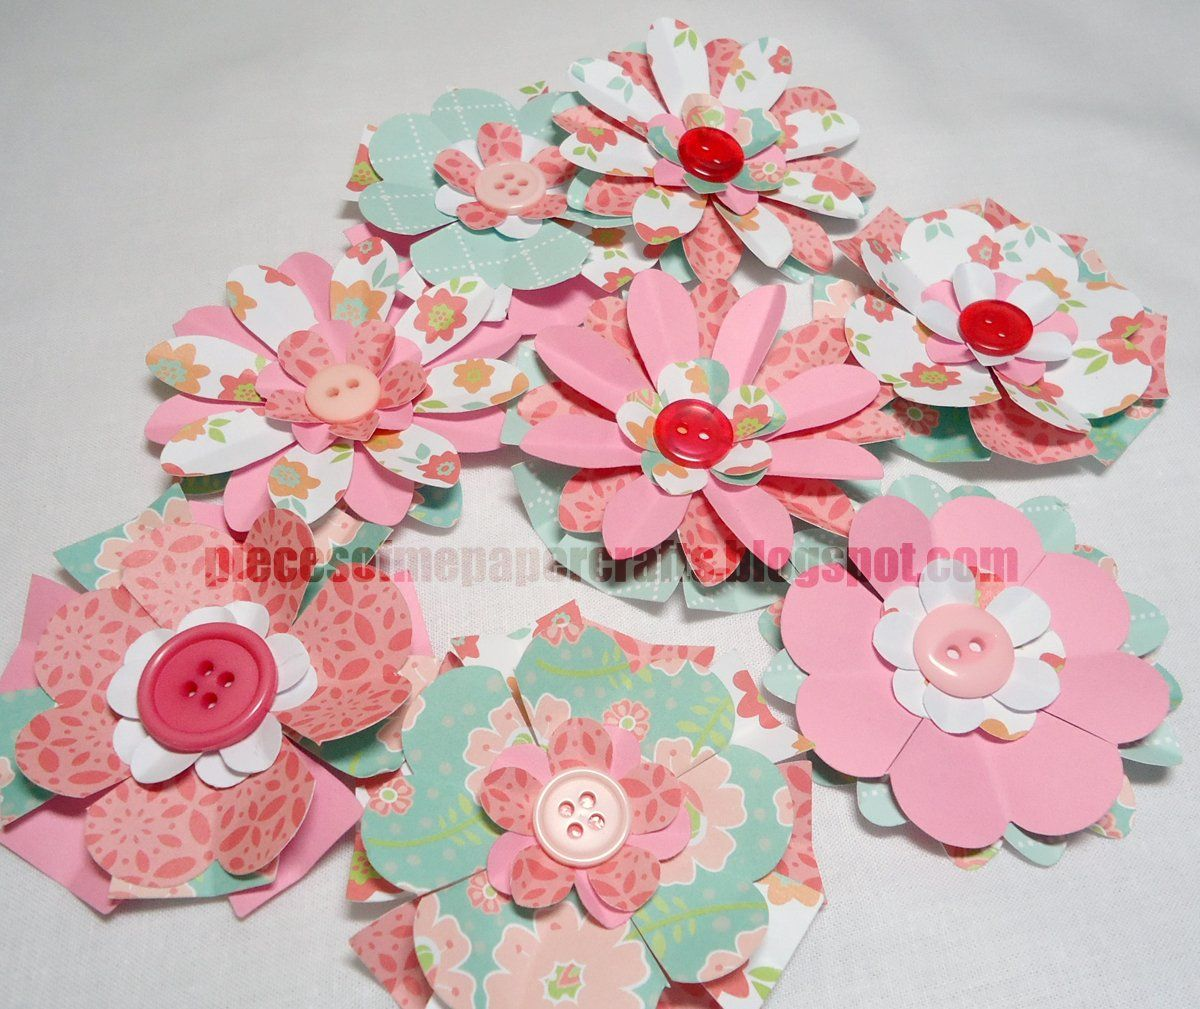 Flowers Made Out Of Scrapbooking Paper Started Making Paper